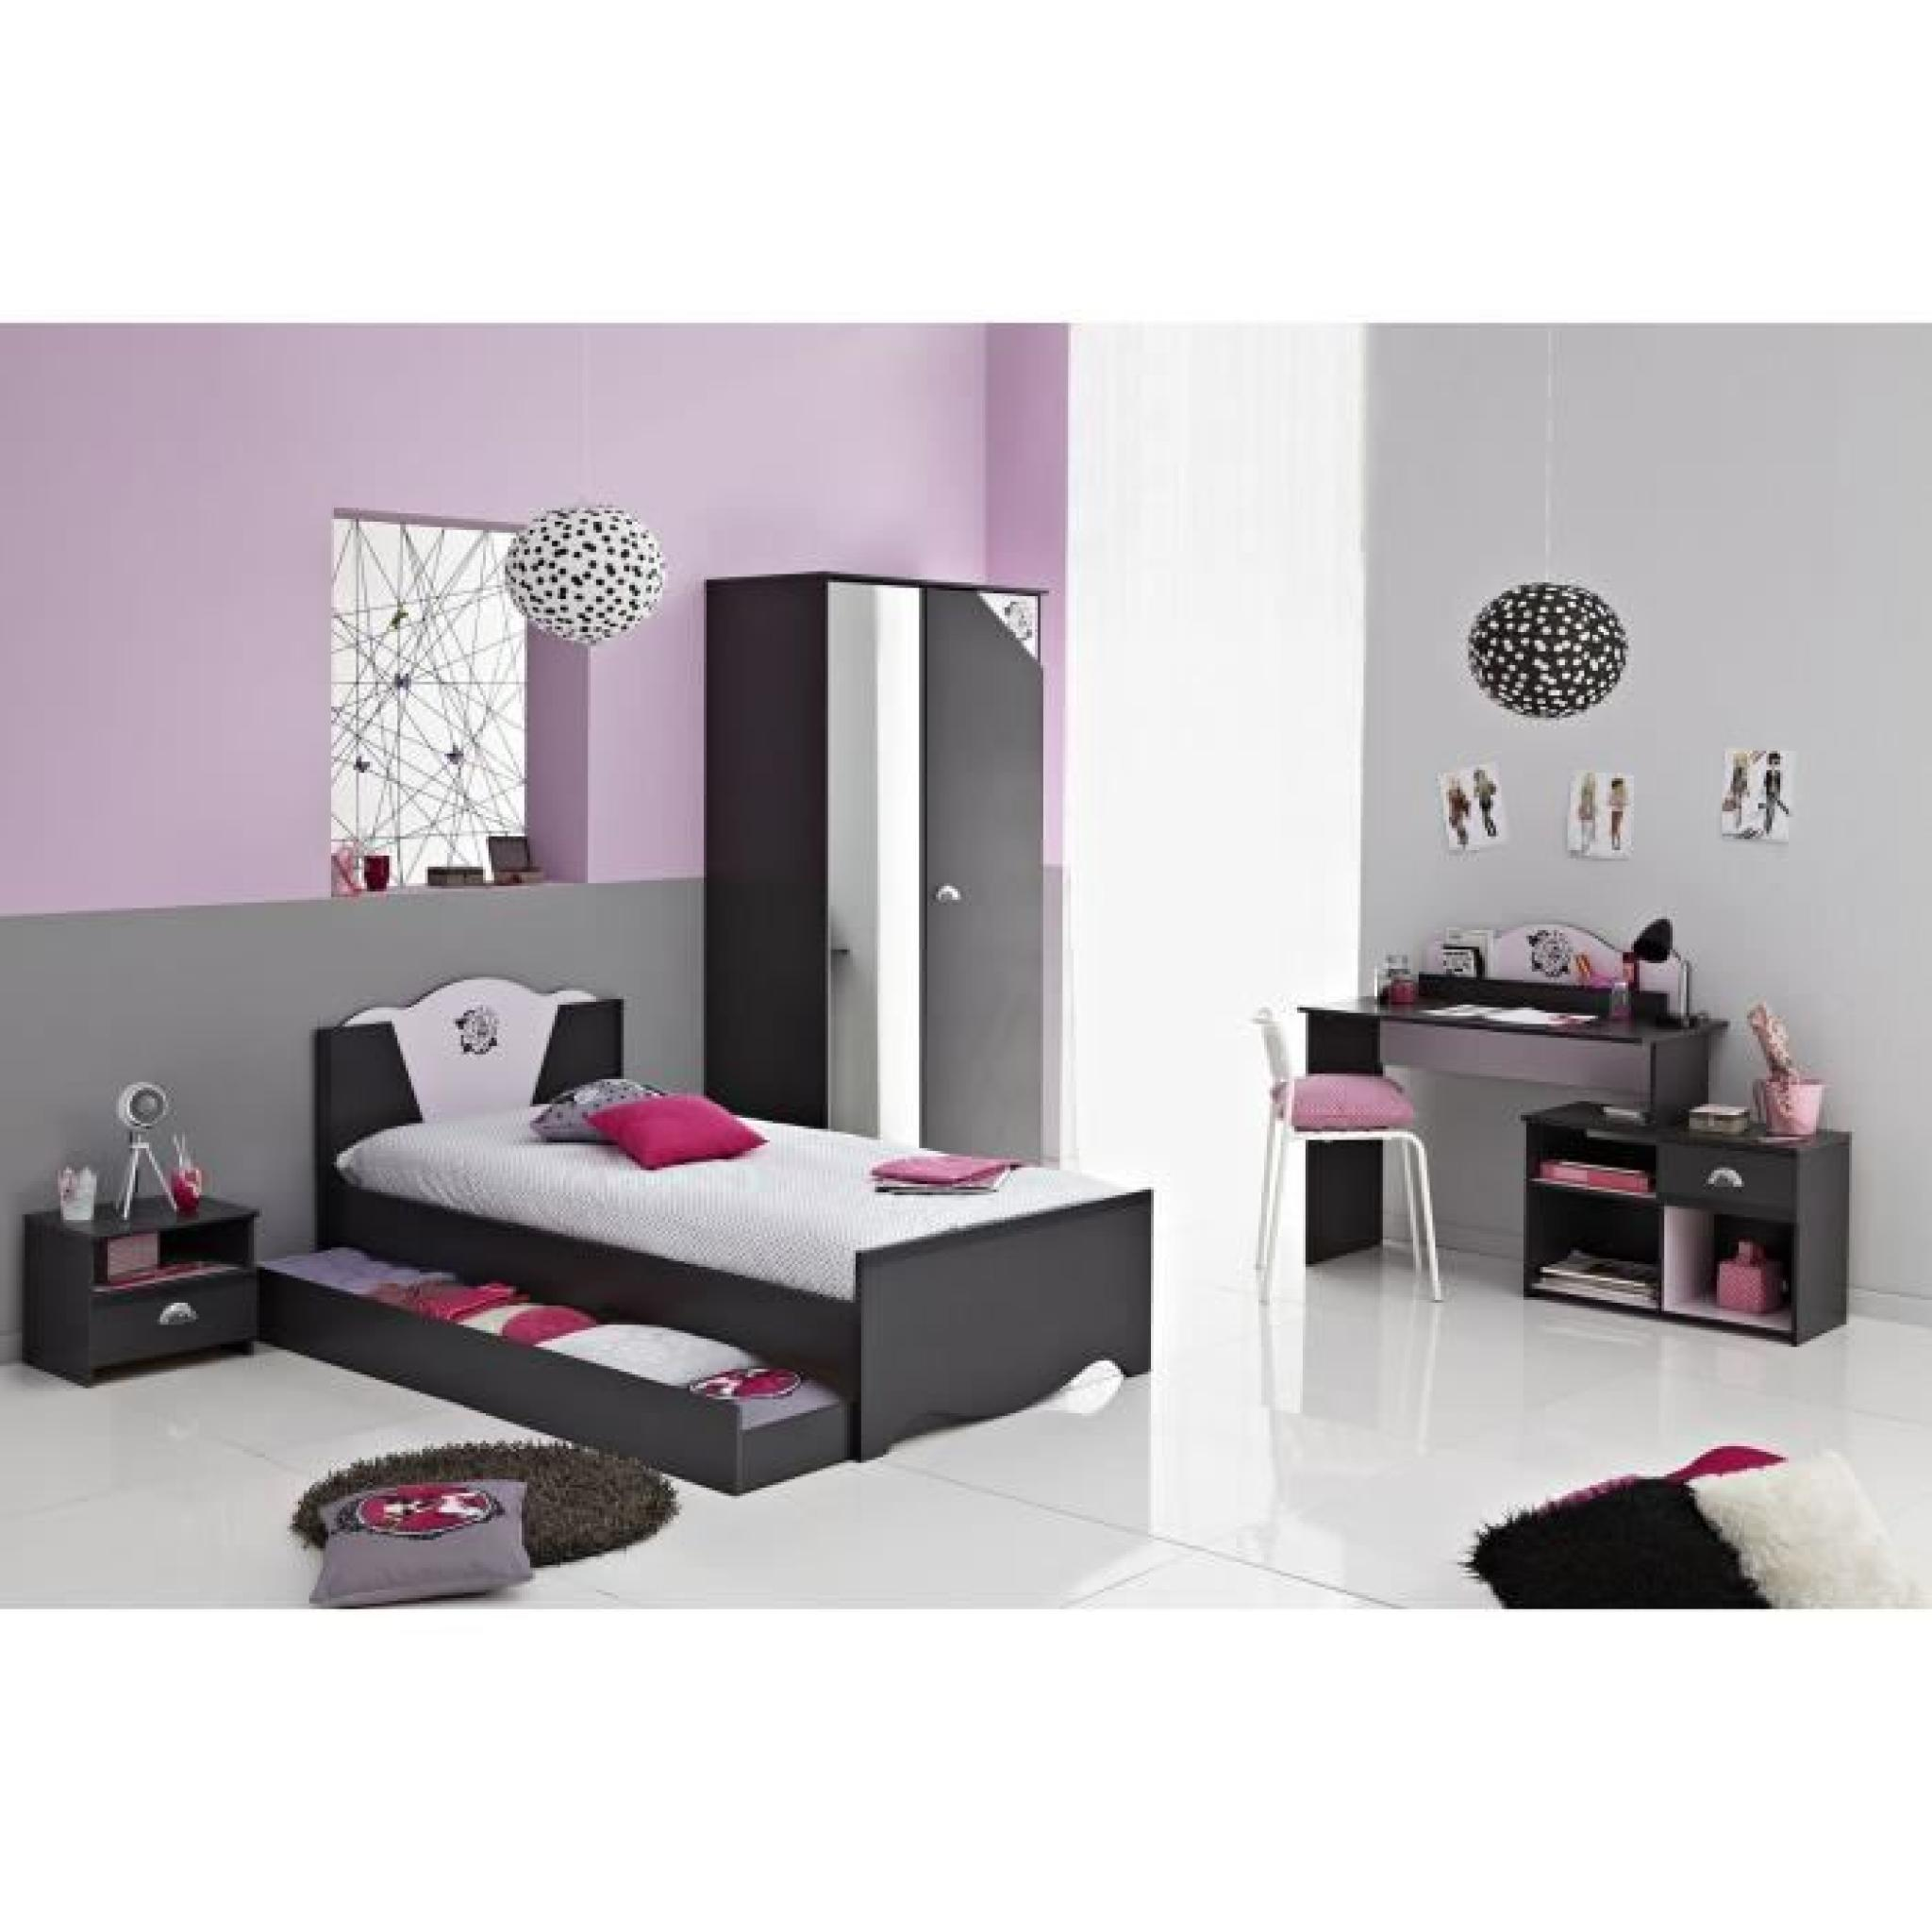 chambre grise et rose. Black Bedroom Furniture Sets. Home Design Ideas